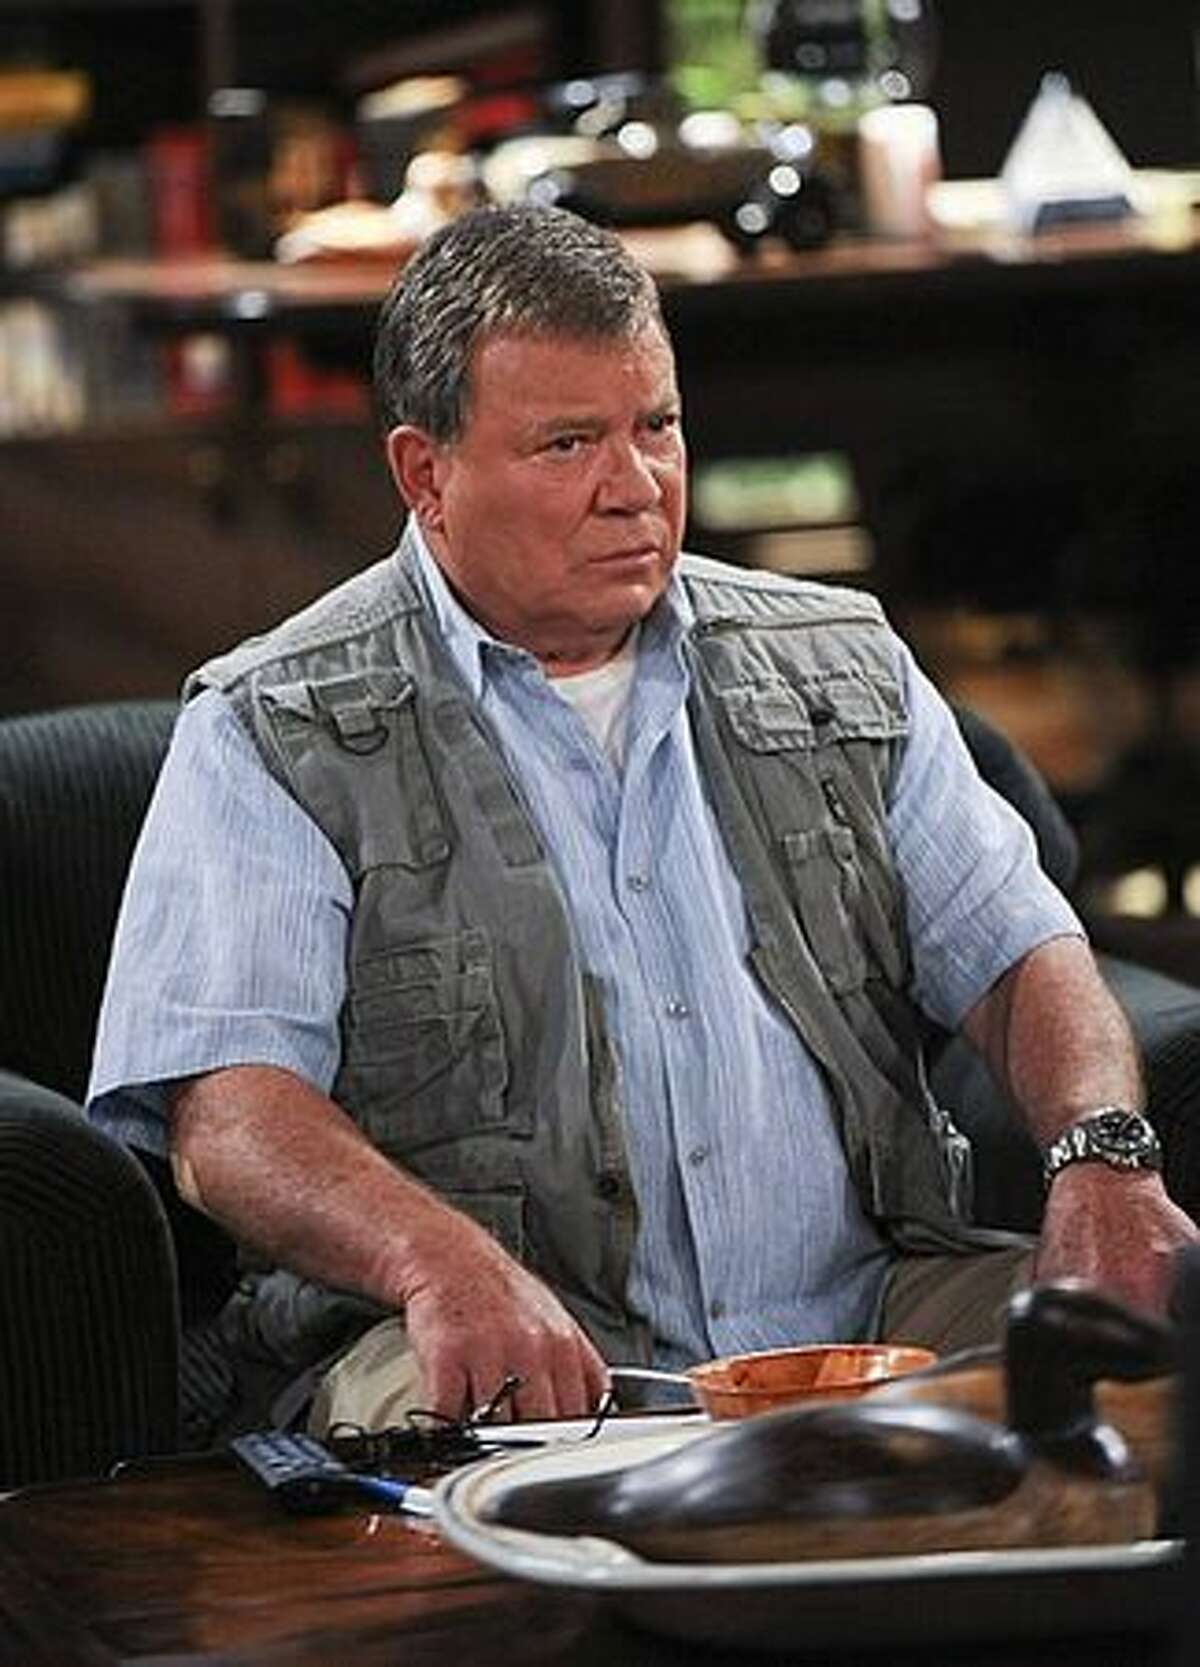 William Shatner gets a new son, or at least a new co-star, on CBS's